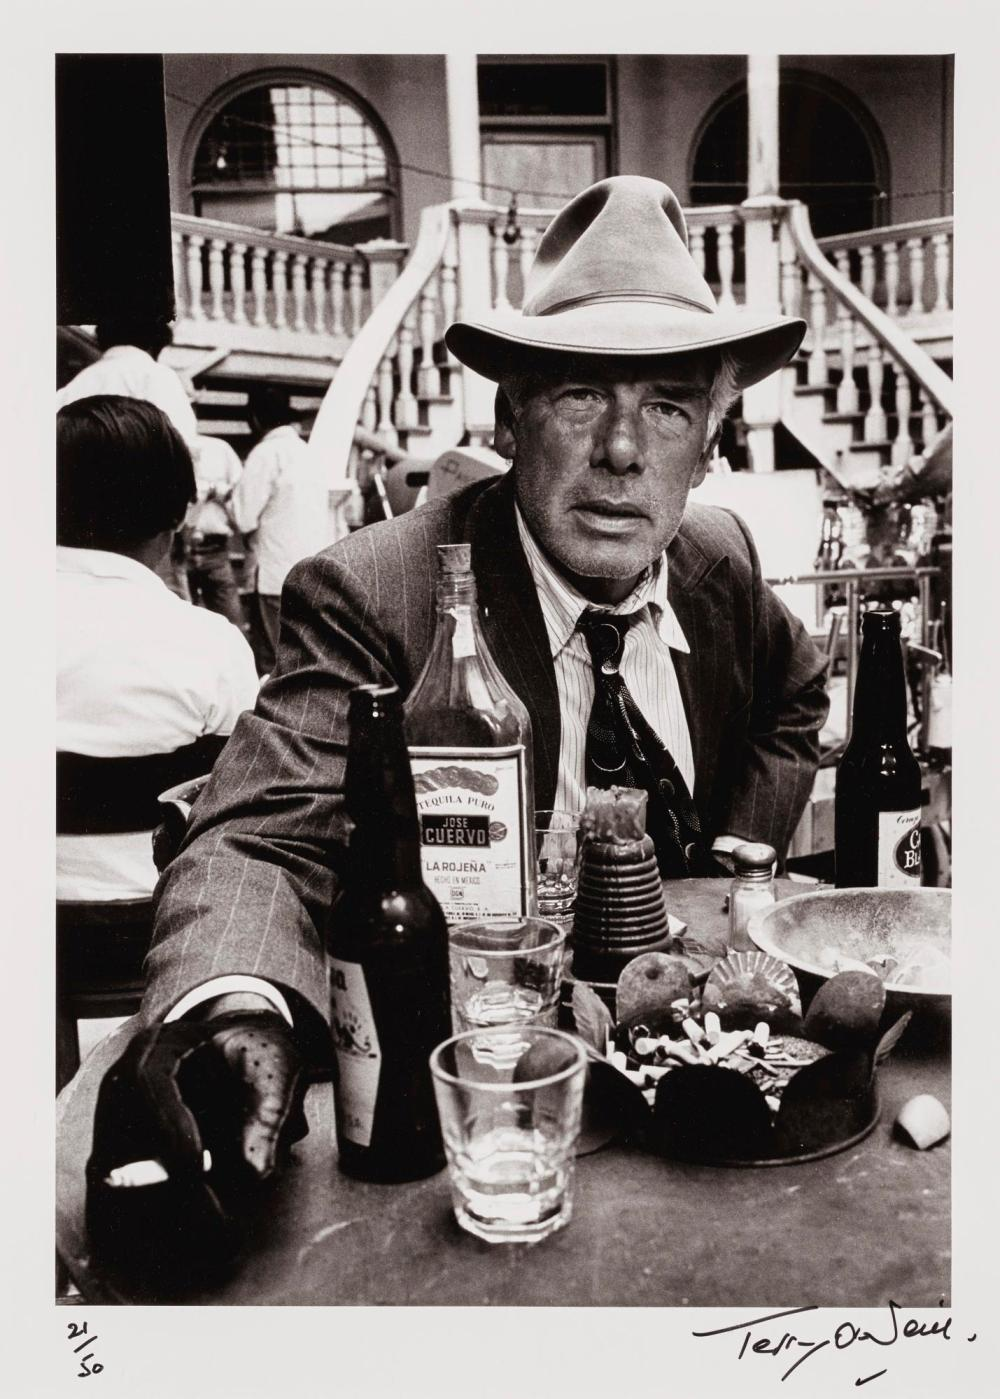 TERRY O'NEILL | Lee Marvin, Tucson, 1972